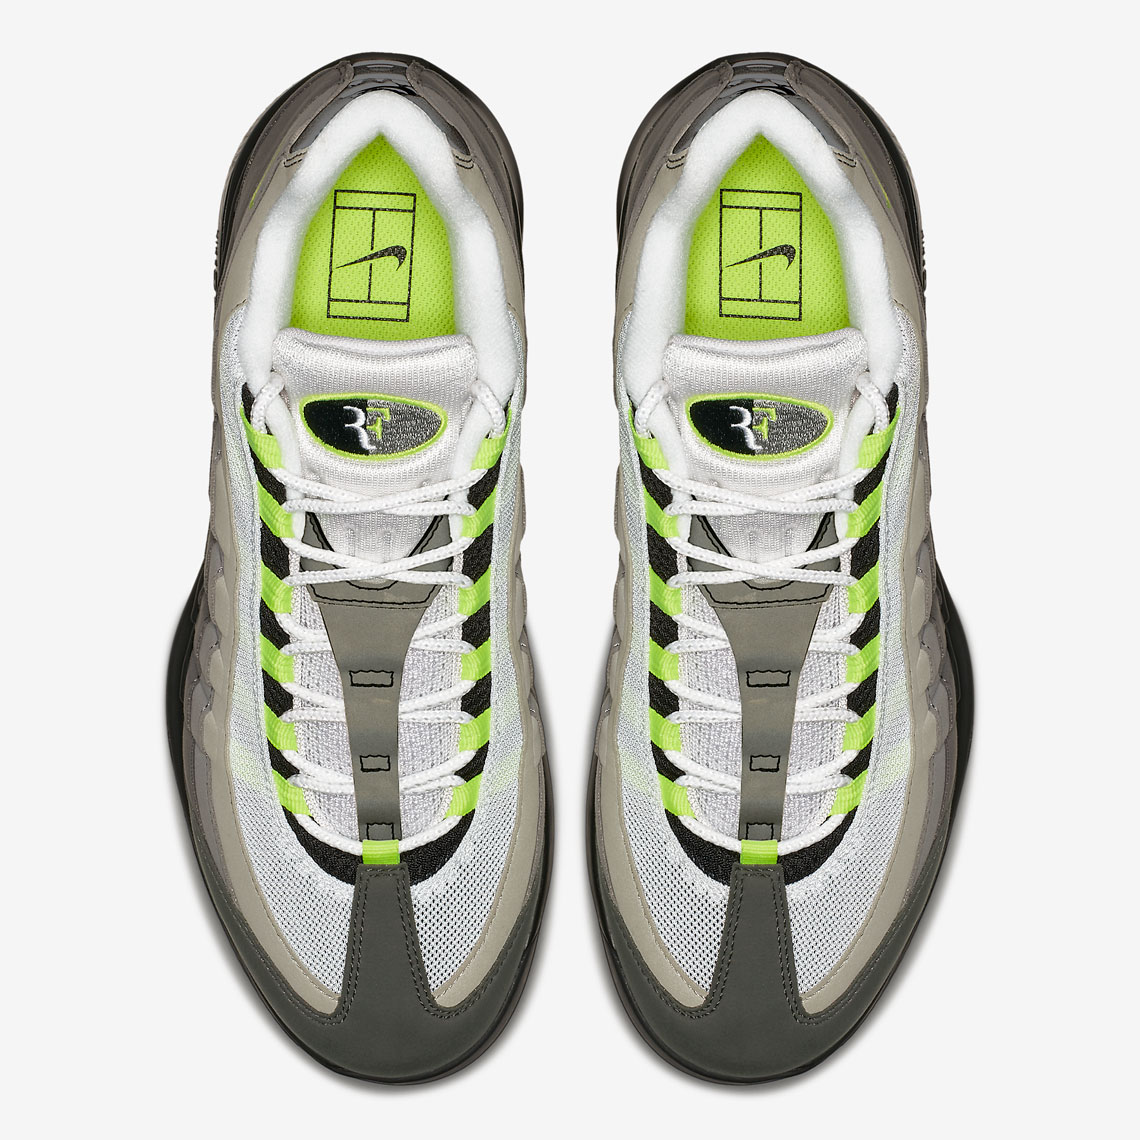 best service 97653 64565 ... discount code for nikecourt vapor rf x air max 95. release date march 9  2018